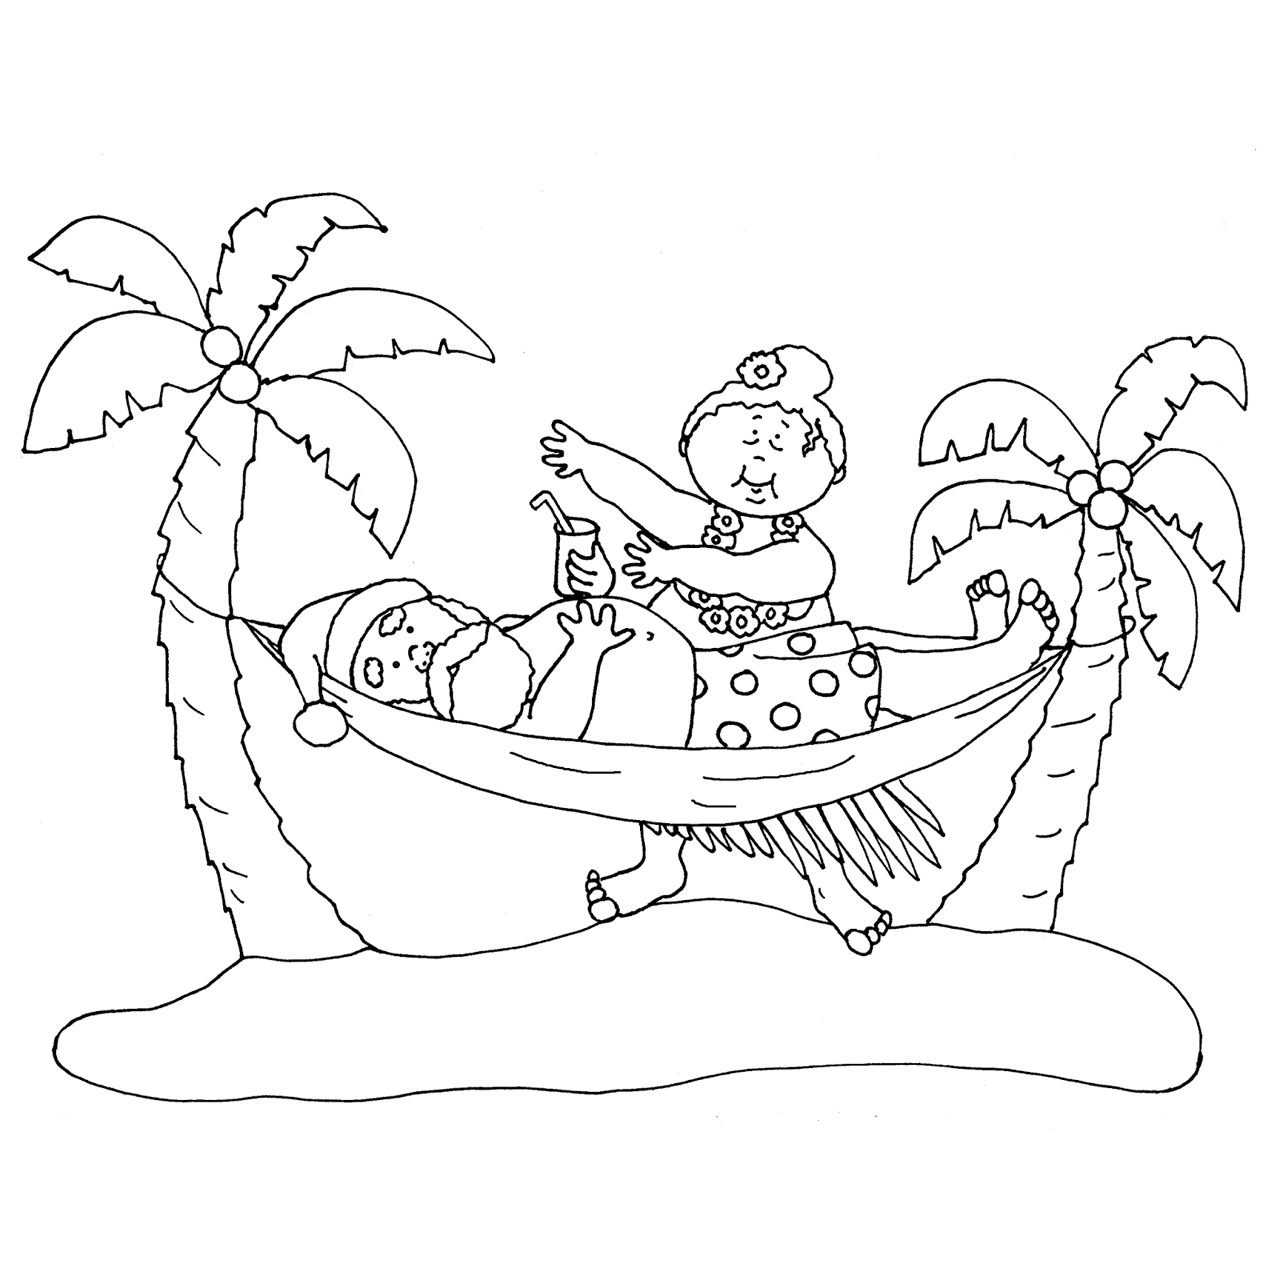 Christmas In July Coloring Pages Santa in Hammock